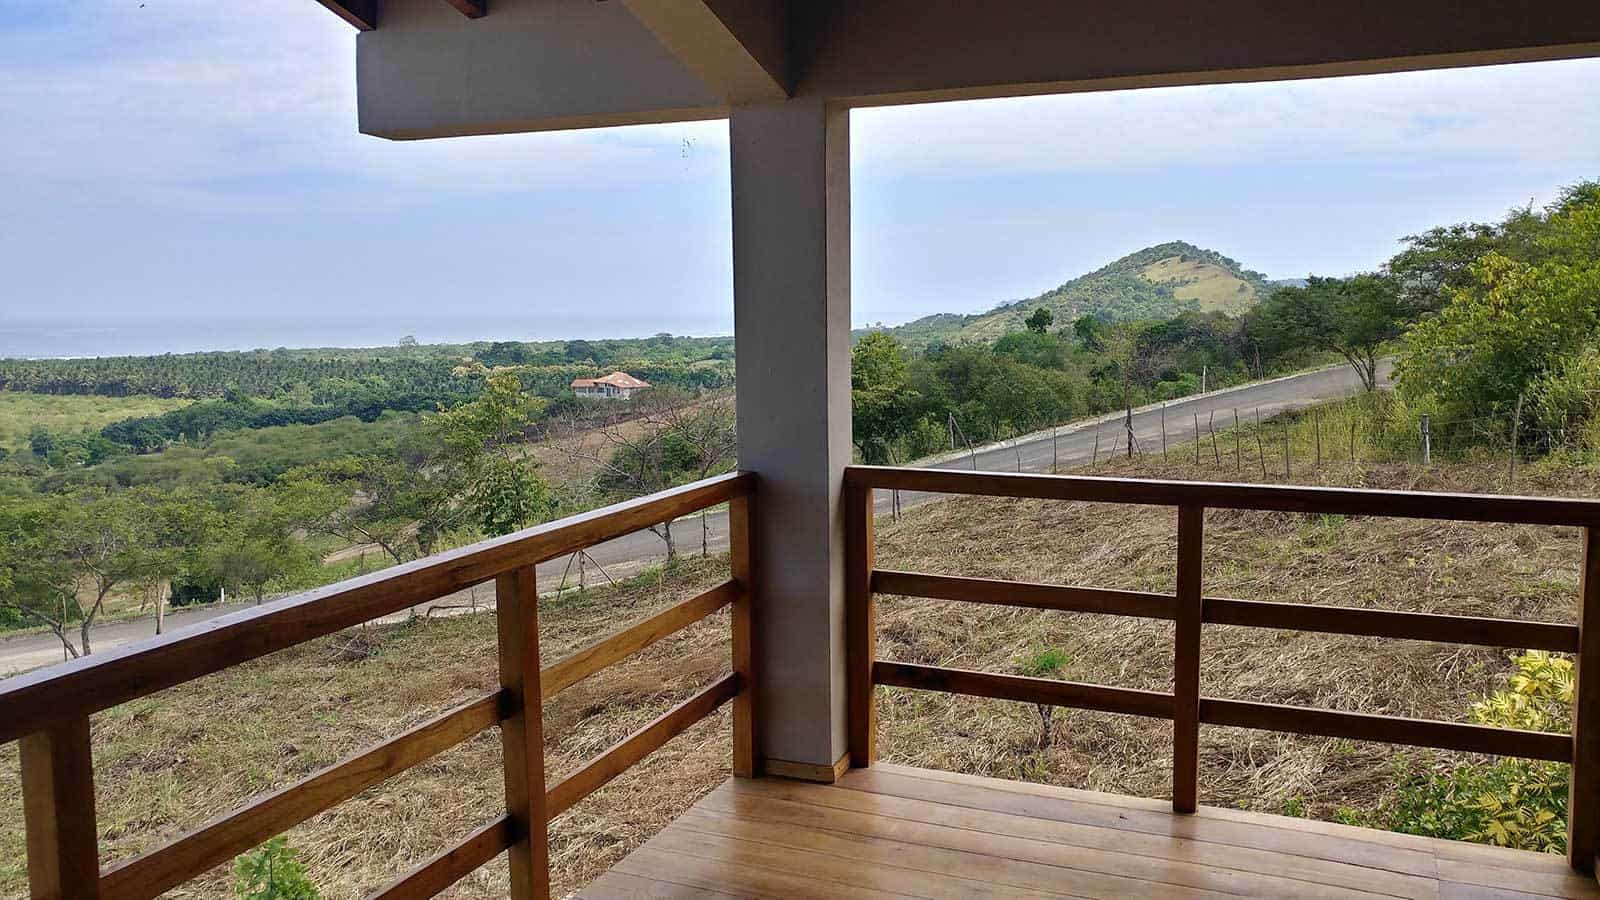 ayampe-ocean-view-house-upstairs-view-05--1600x900